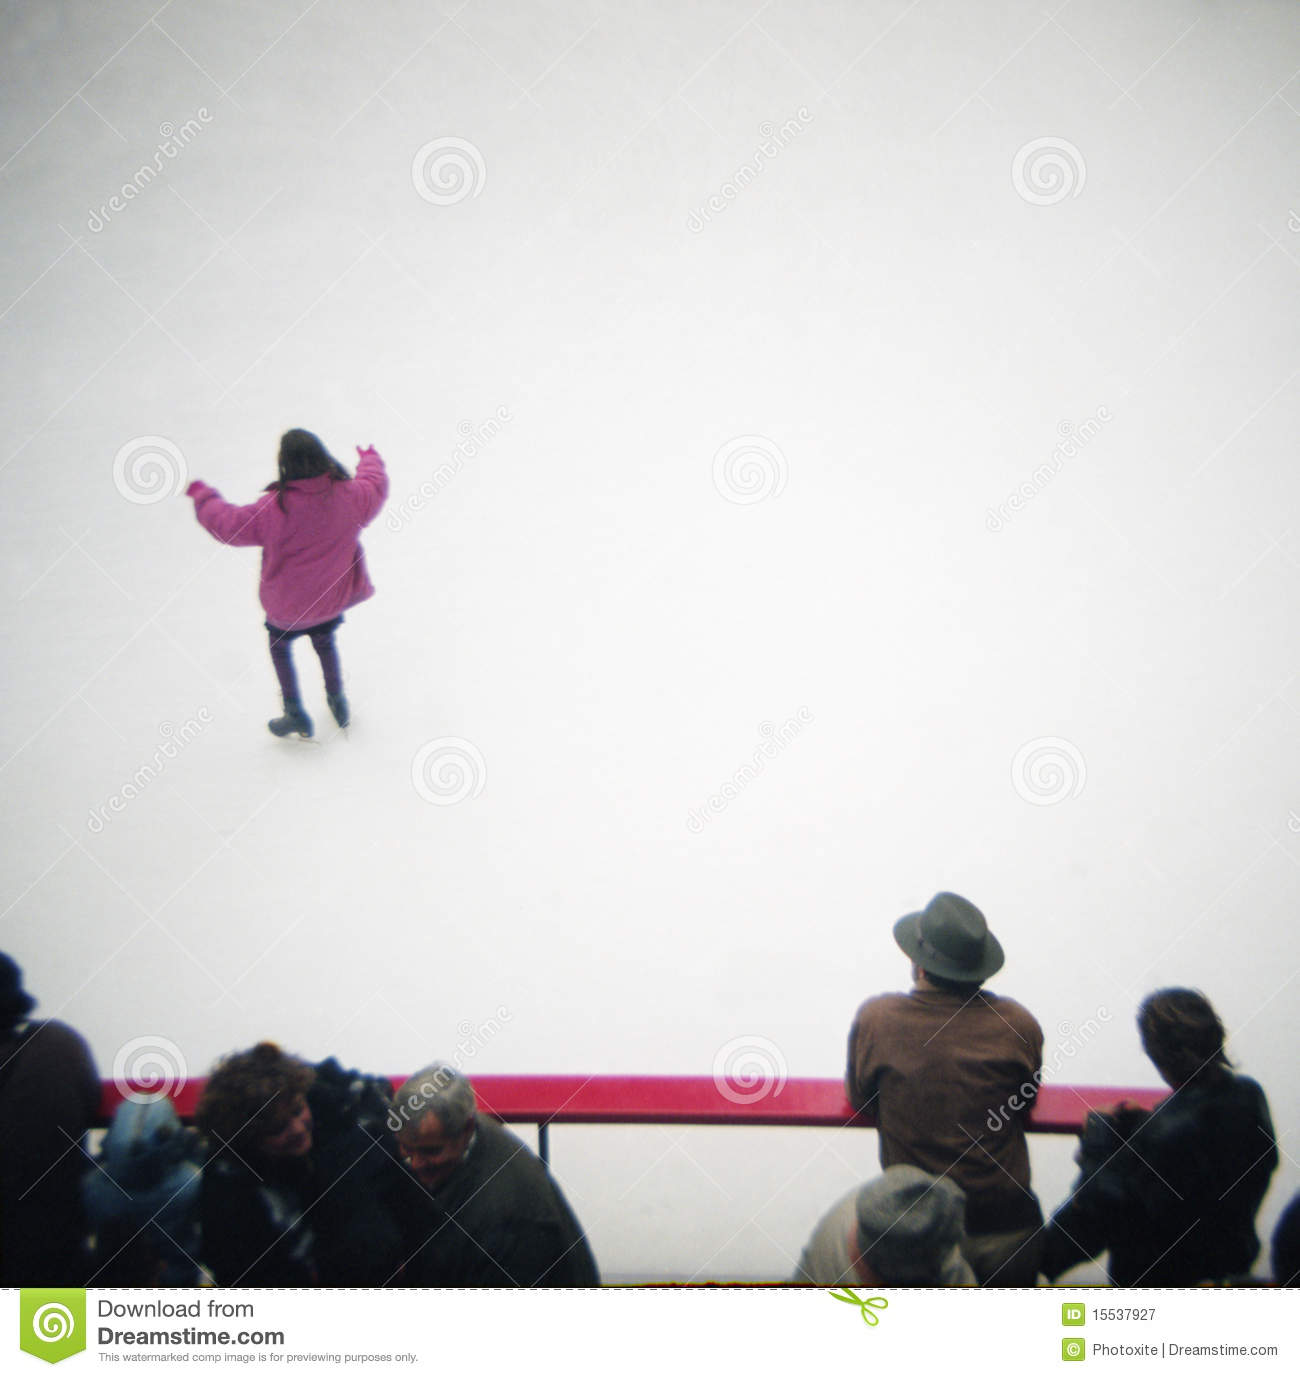 Madison Square Garden Skater Editorial Photography Image 15537927